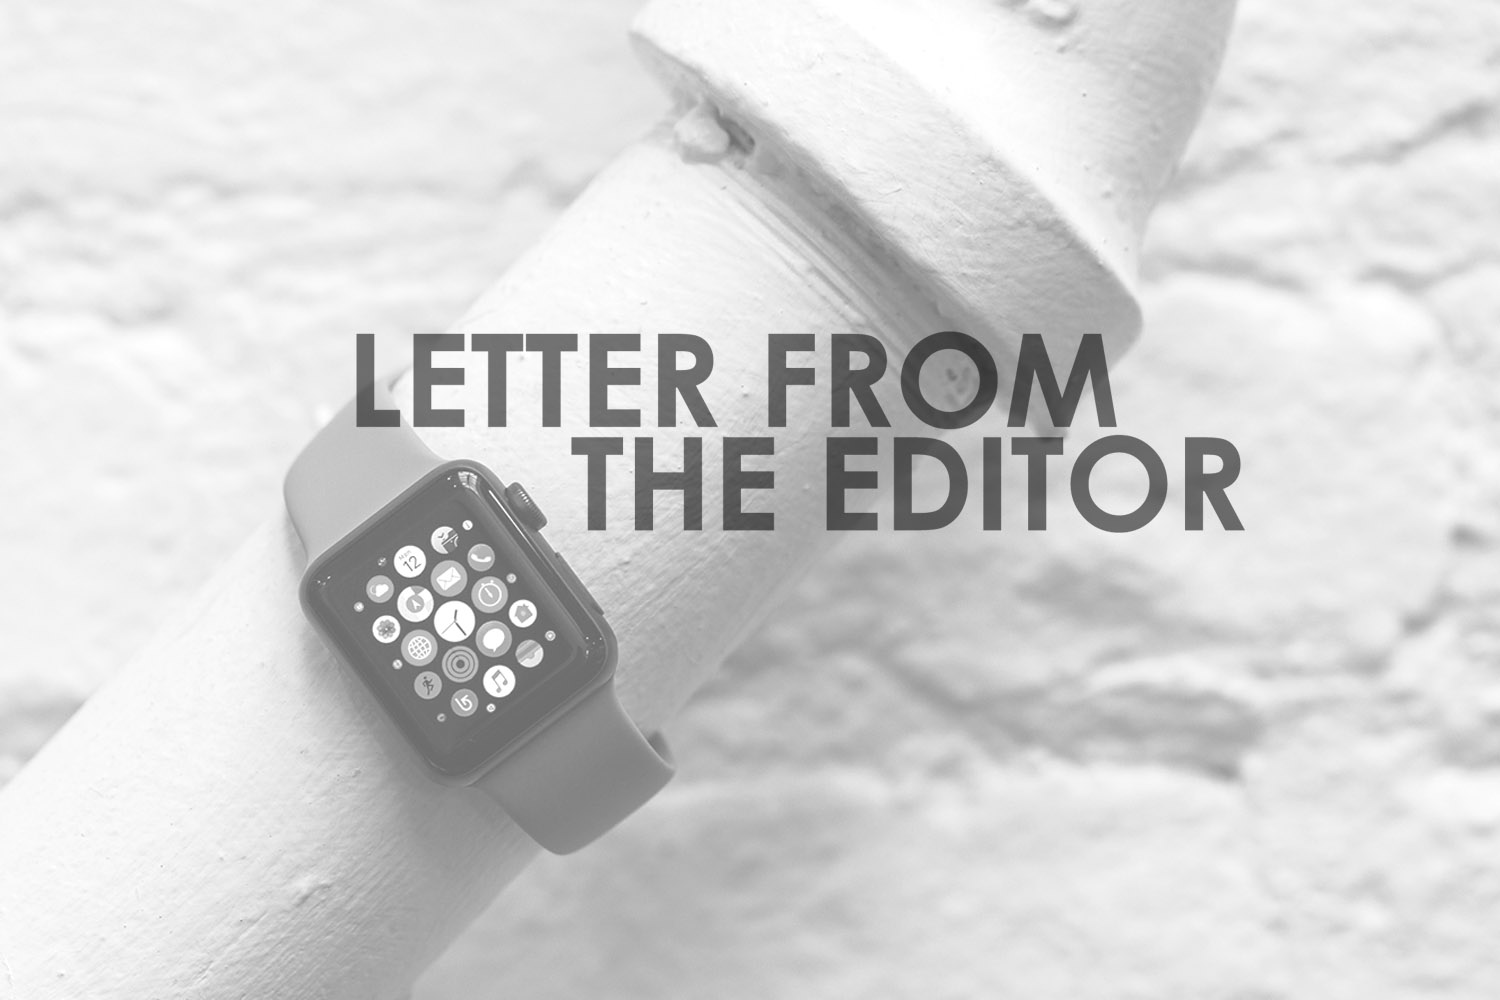 Letter From The Editor SmartWatches Frank Geelen